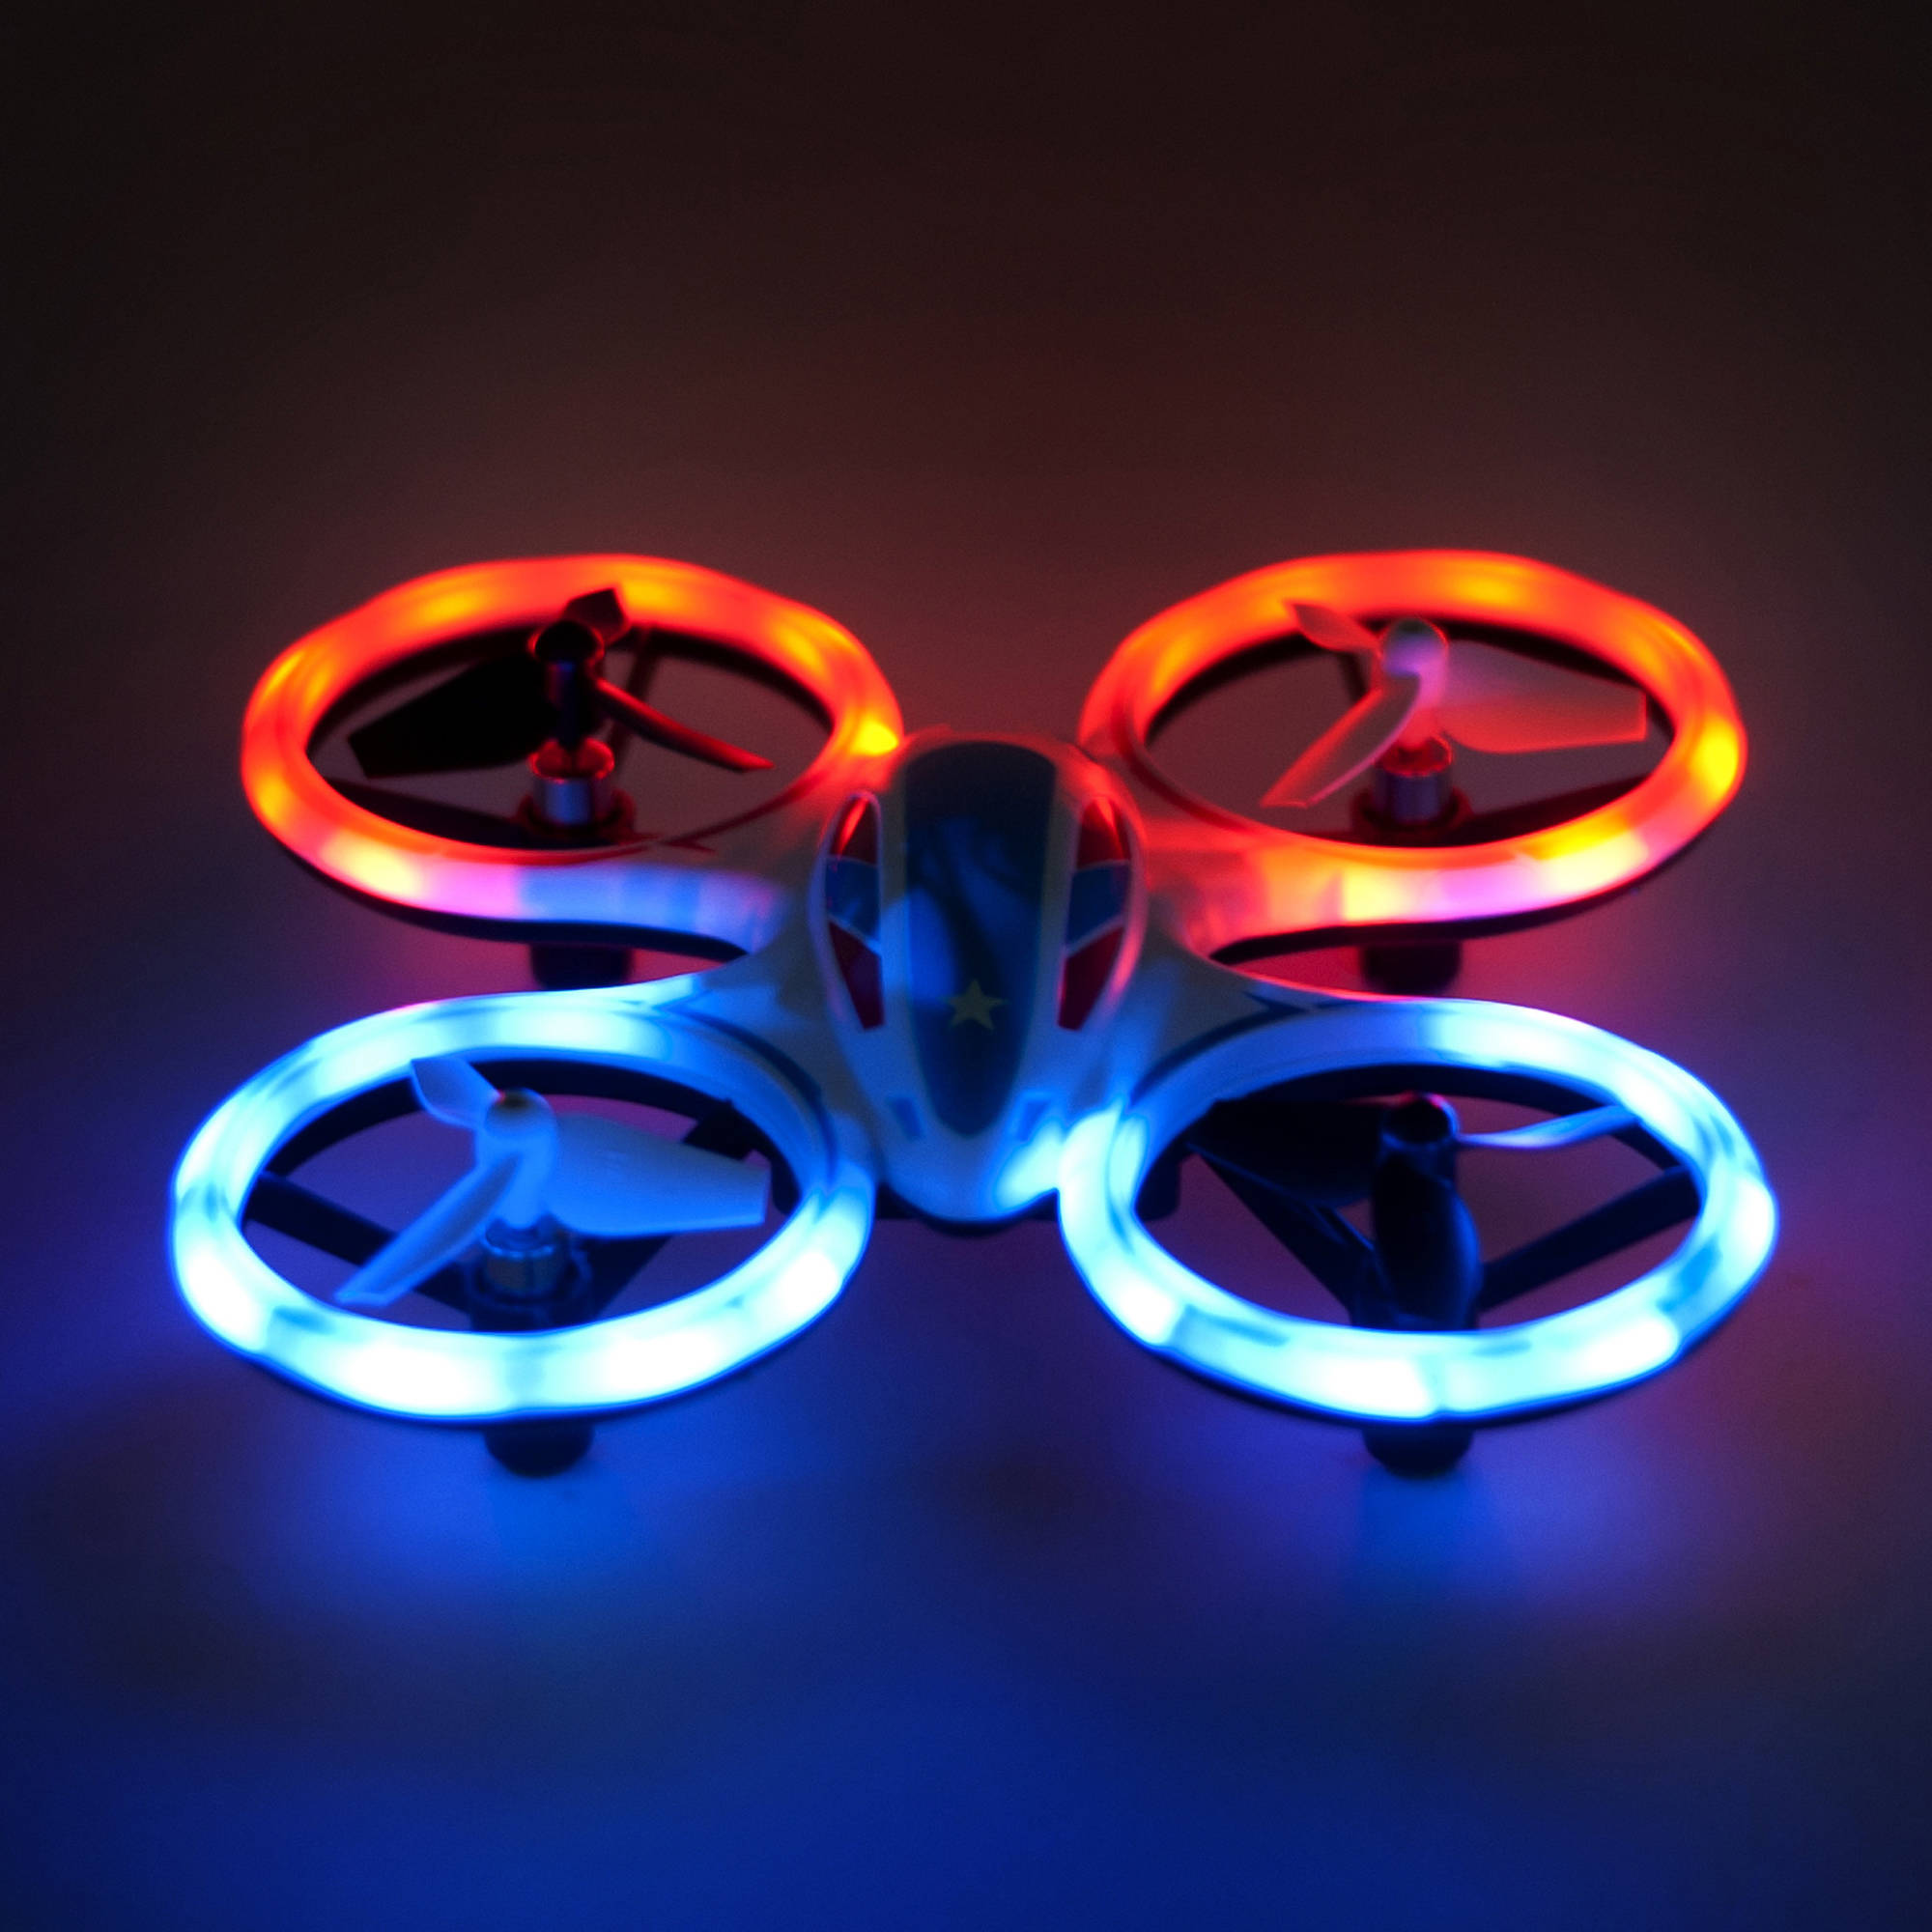 RC Stunt Drone Wonder Chopper Sky Patroller Quadcopter - Training Kids Friendly